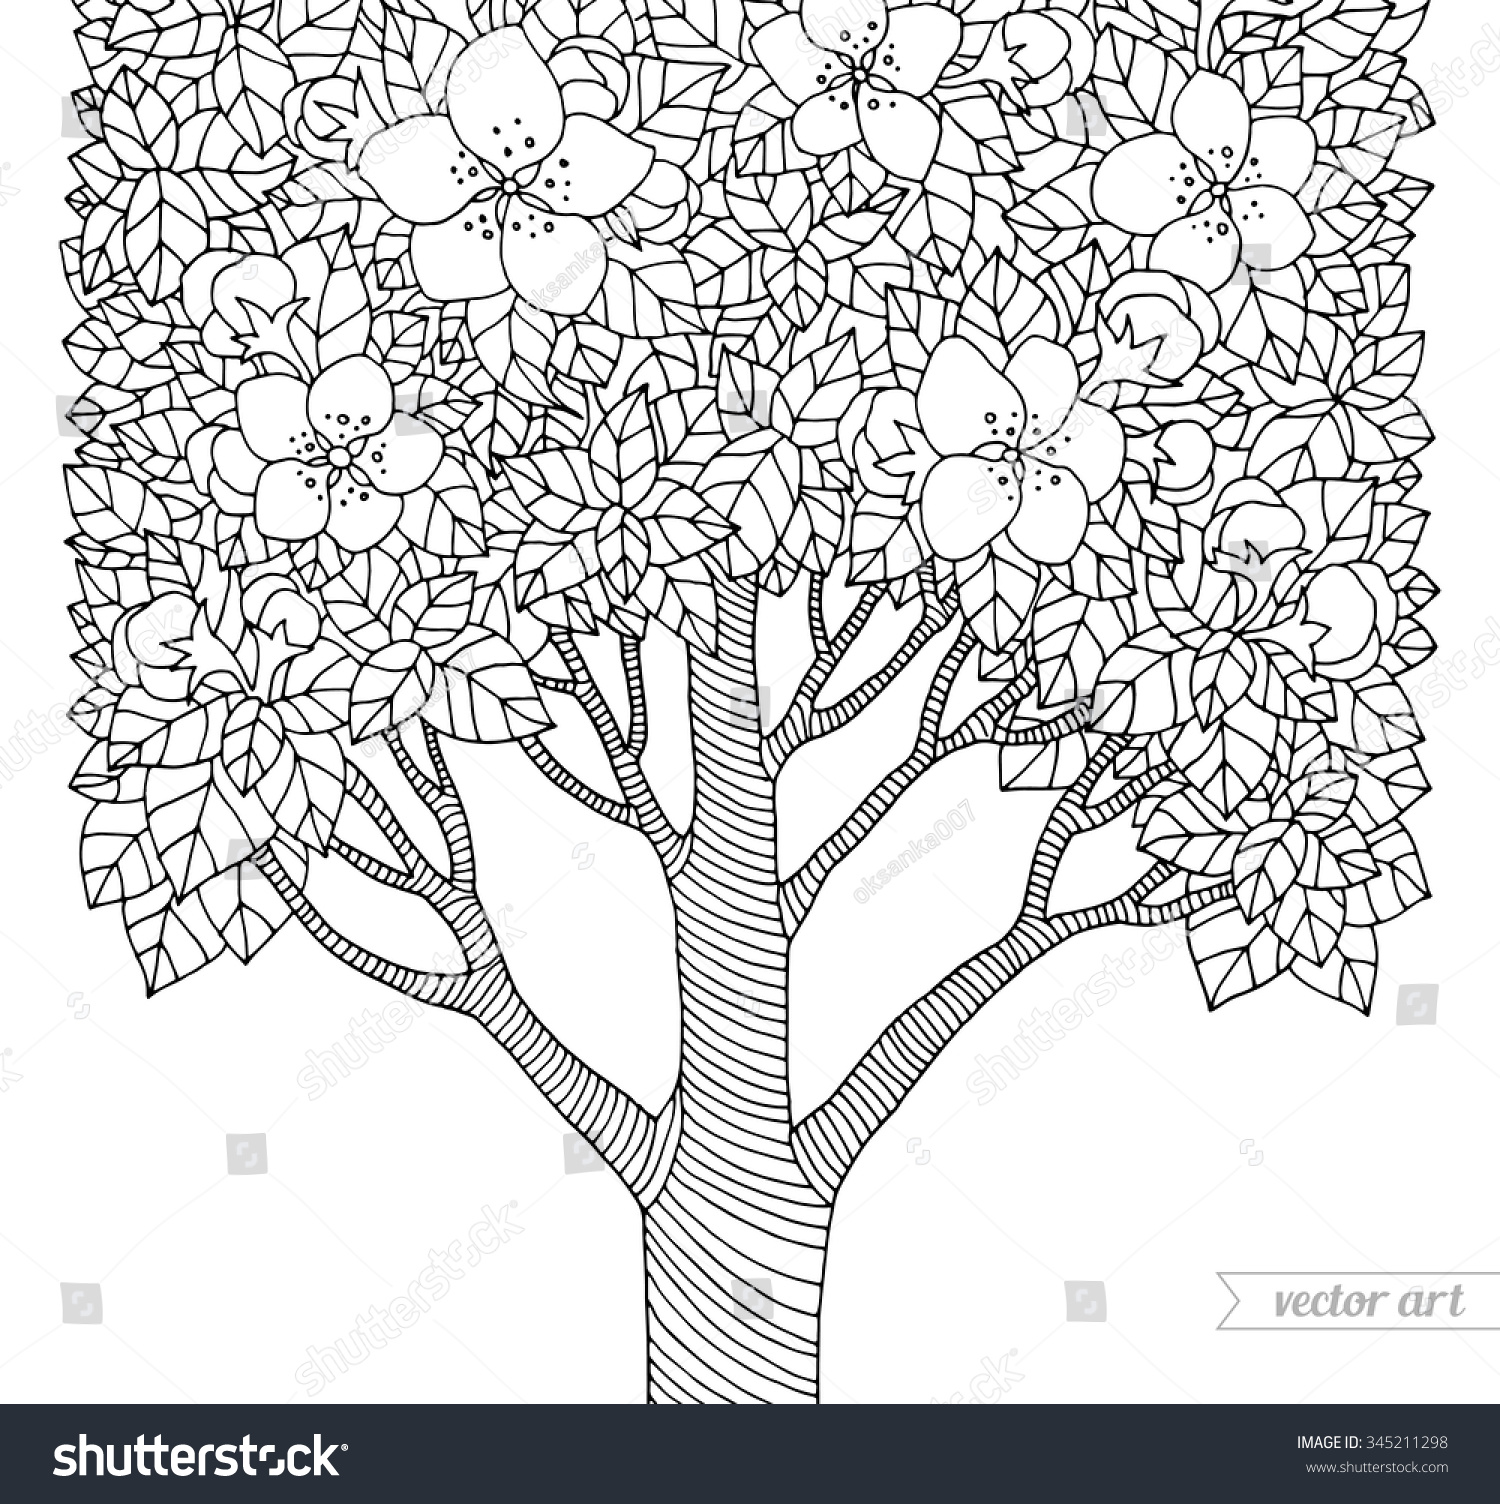 Coloring book page apple tree - Forest Apple Flower Tree Vector Artwork Love Bohemia Concept For Invitation Card